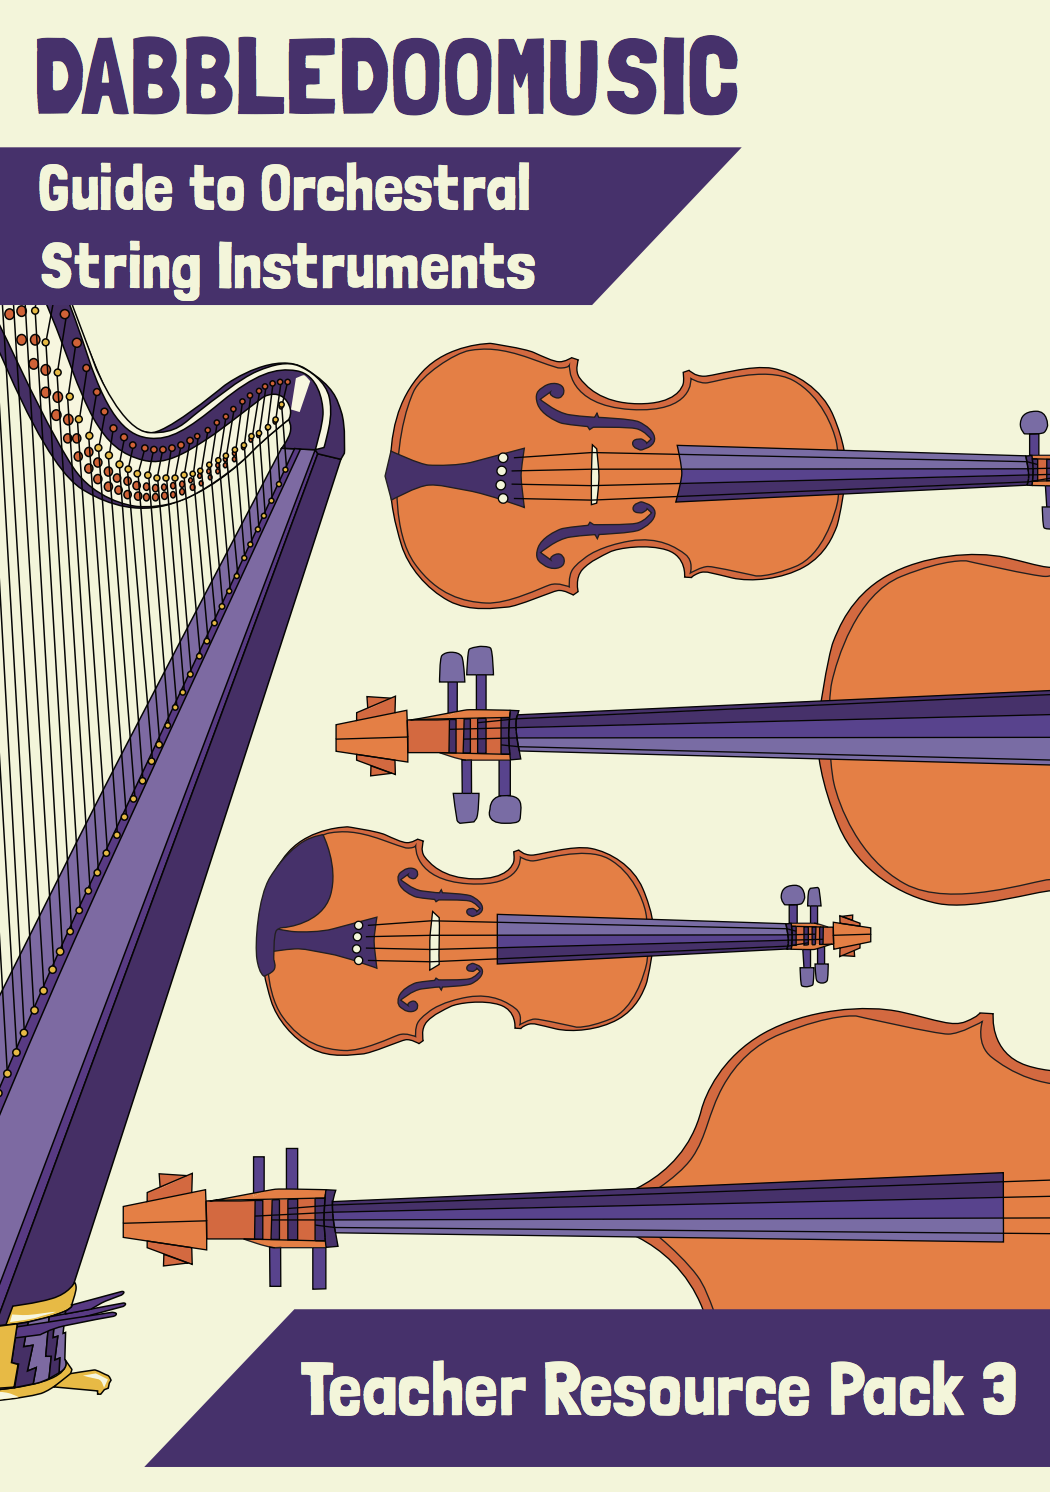 DabbledooMusic Resource - Guide to Orchestra Strings Resource